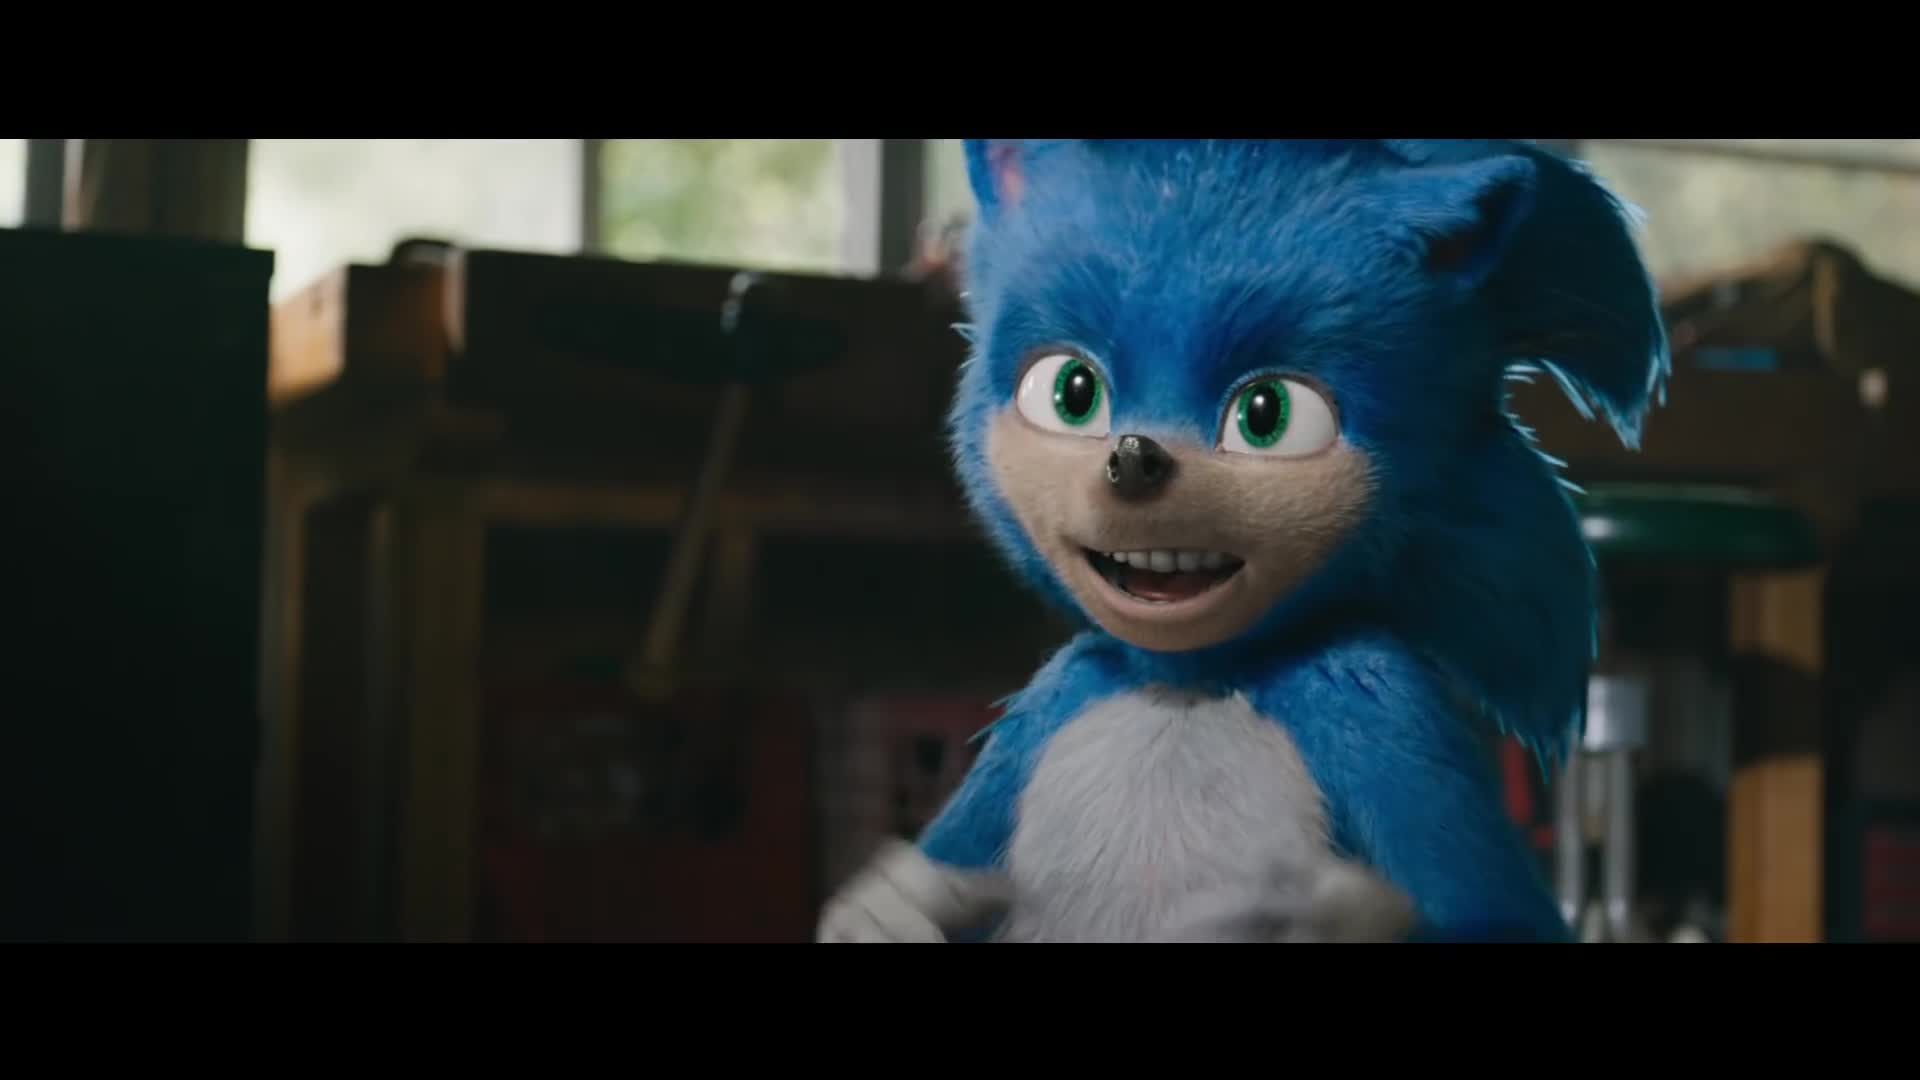 Trailer, Kinofilm, Kino, Paramount Pictures, Sonic, Paramount, Sonic The Hedgehog